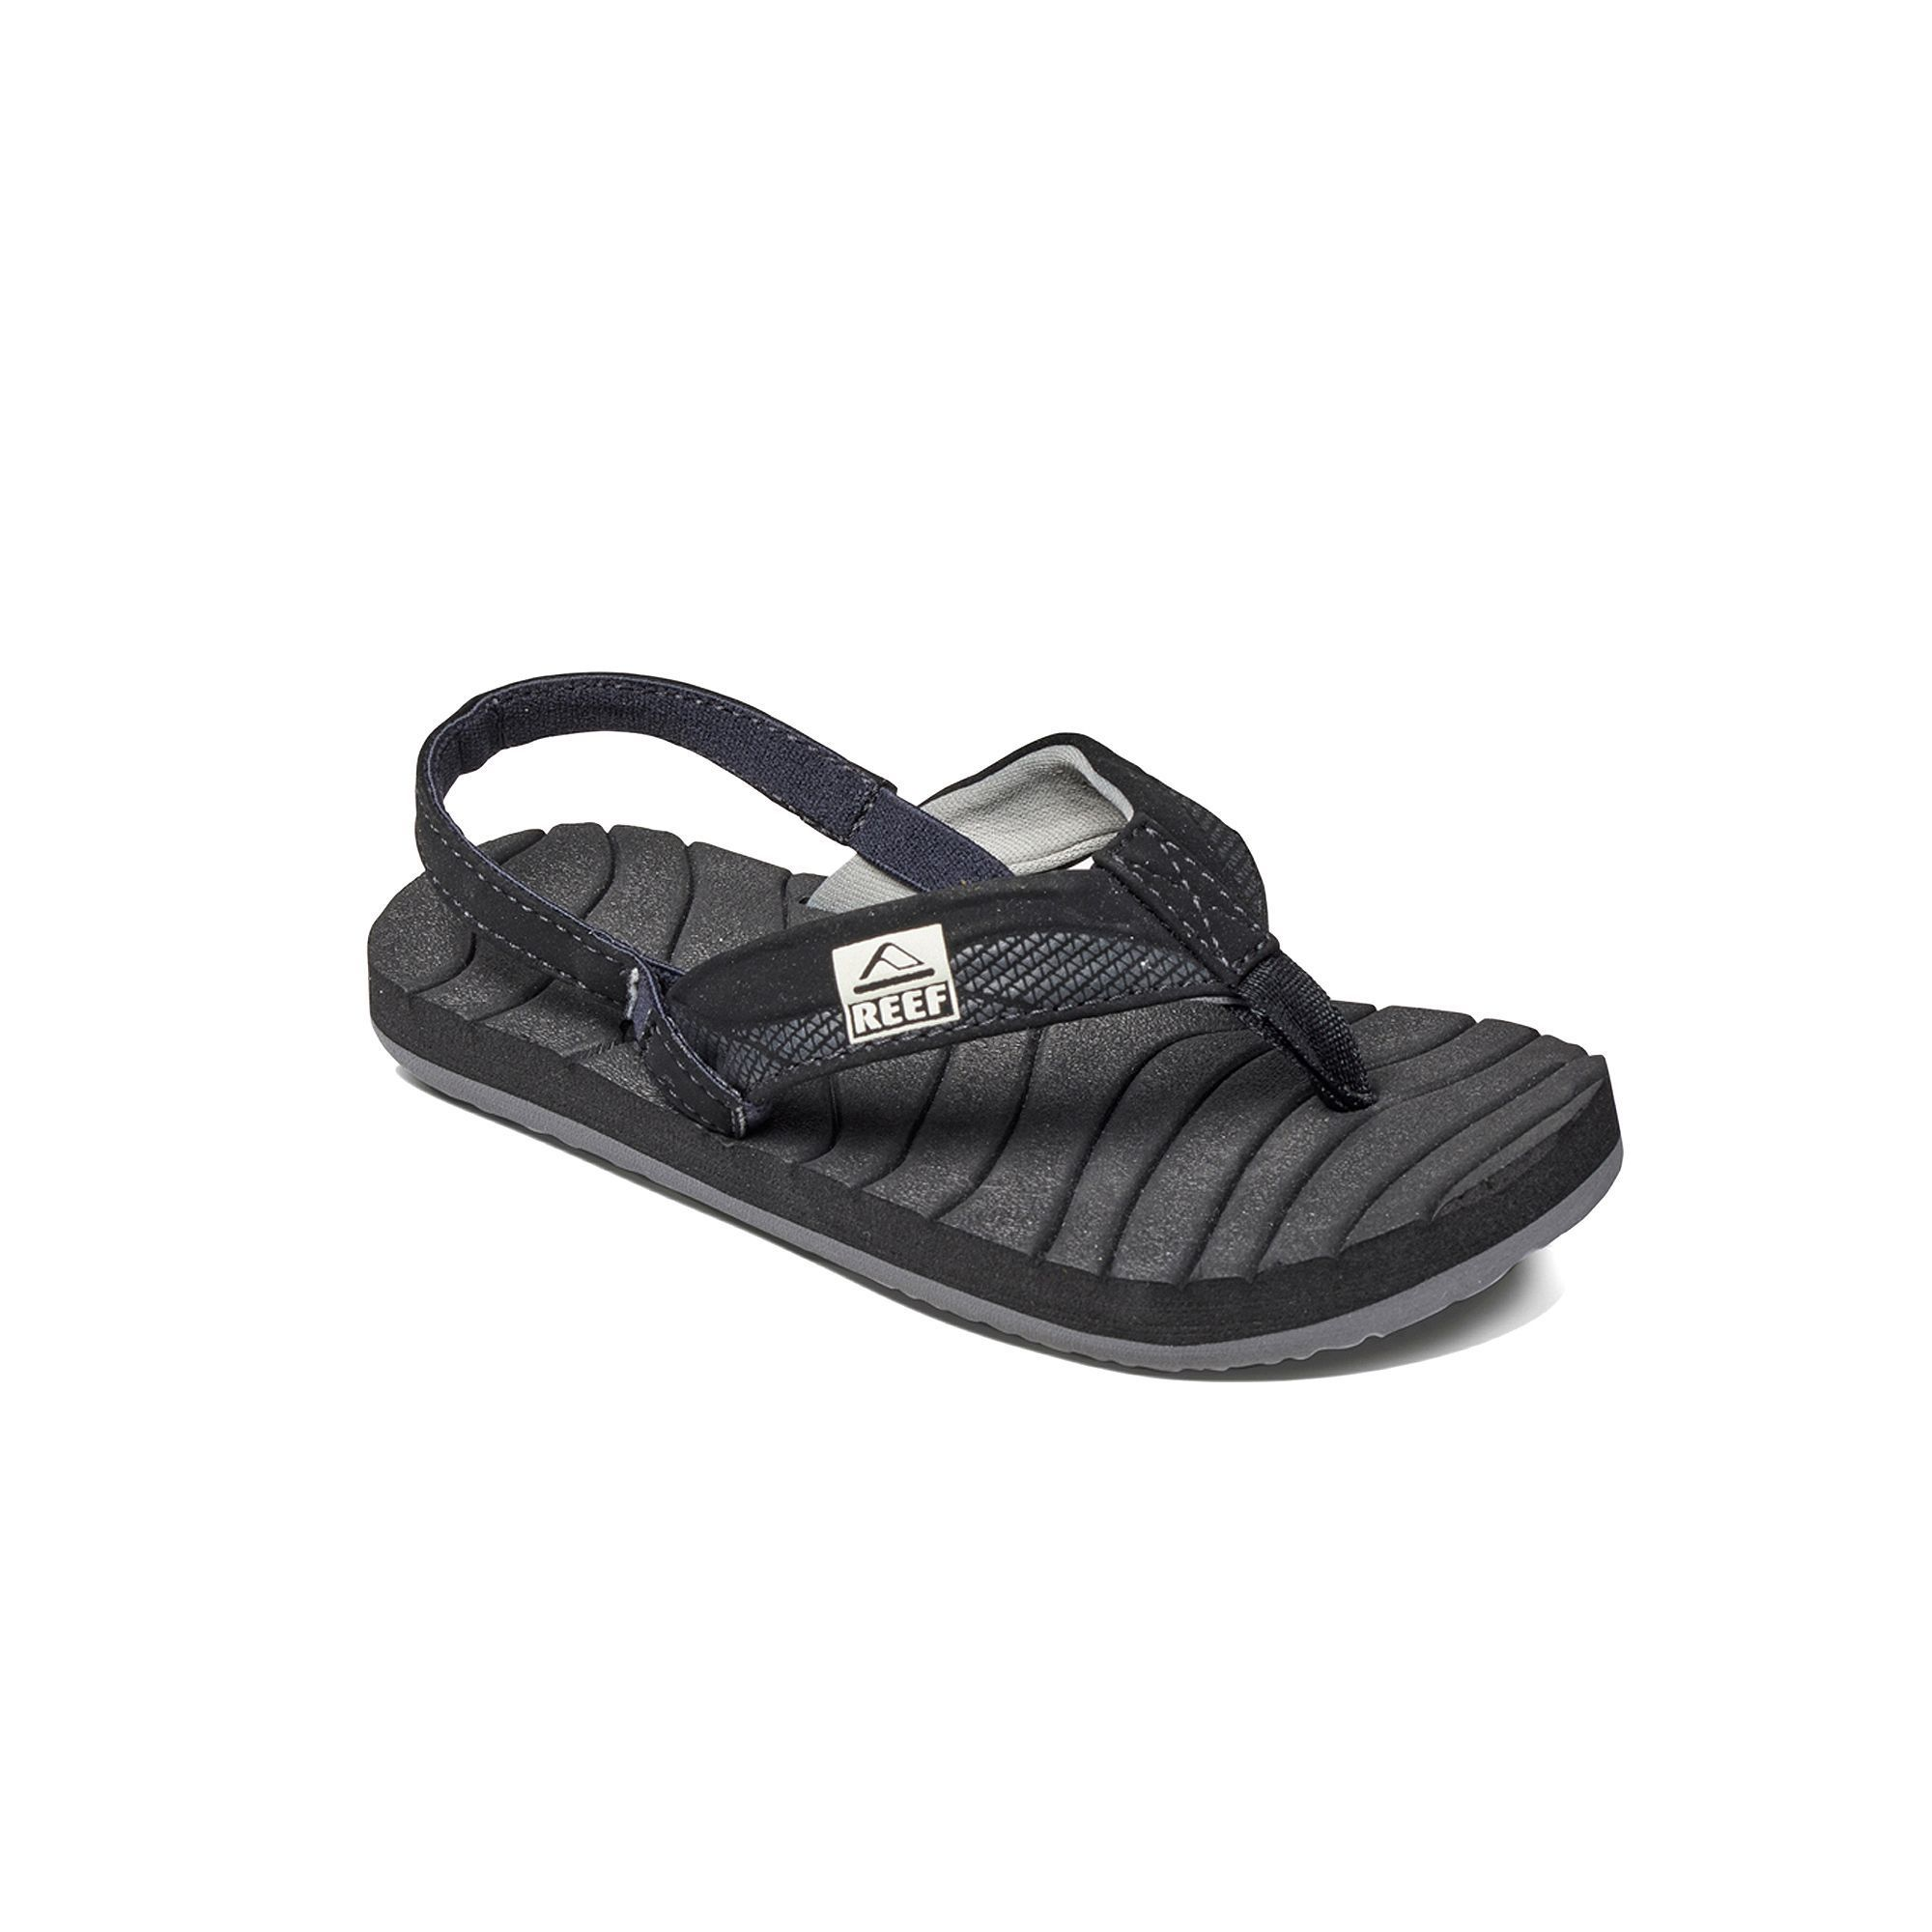 Reef Grom Roundhouse Toddler Boys' Sandals, Size: 5-6T, Black, Durable